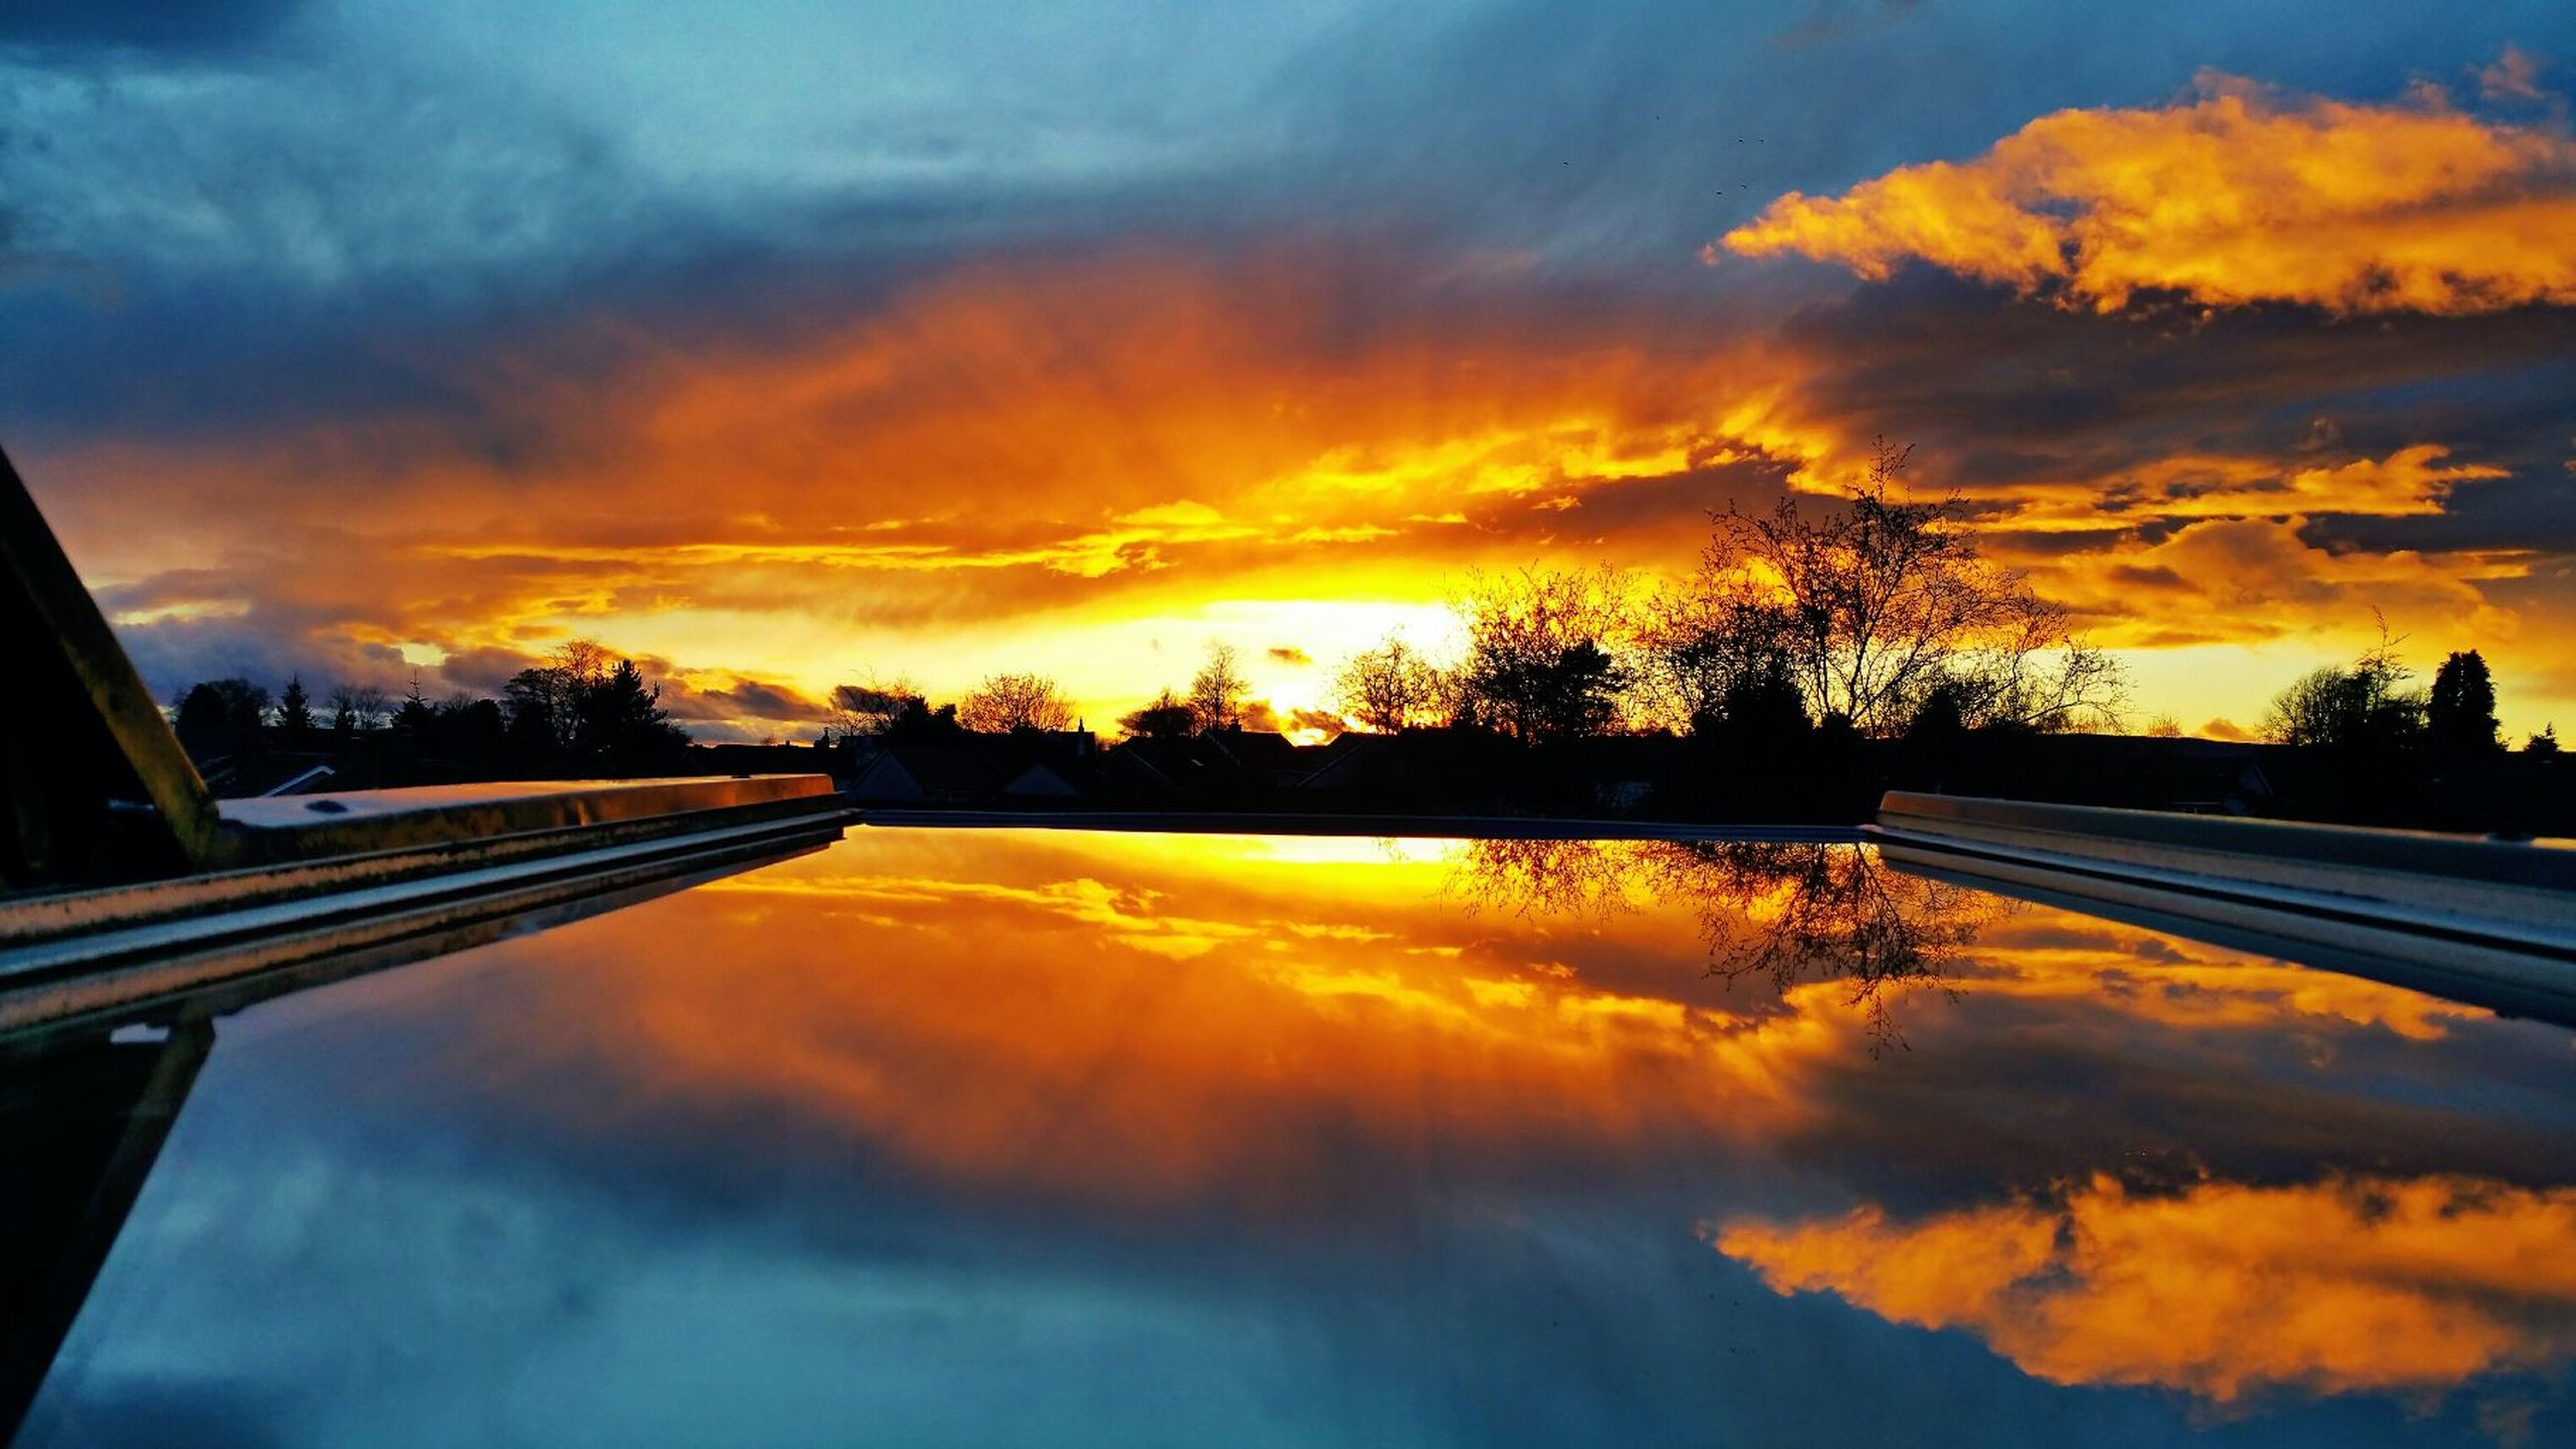 sunset, orange color, reflection, scenics, cloud - sky, tranquil scene, sky, cloud, water, transportation, tree, beauty in nature, tranquility, cloudy, nature, outdoors, dramatic sky, calm, majestic, moody sky, standing water, long, no people